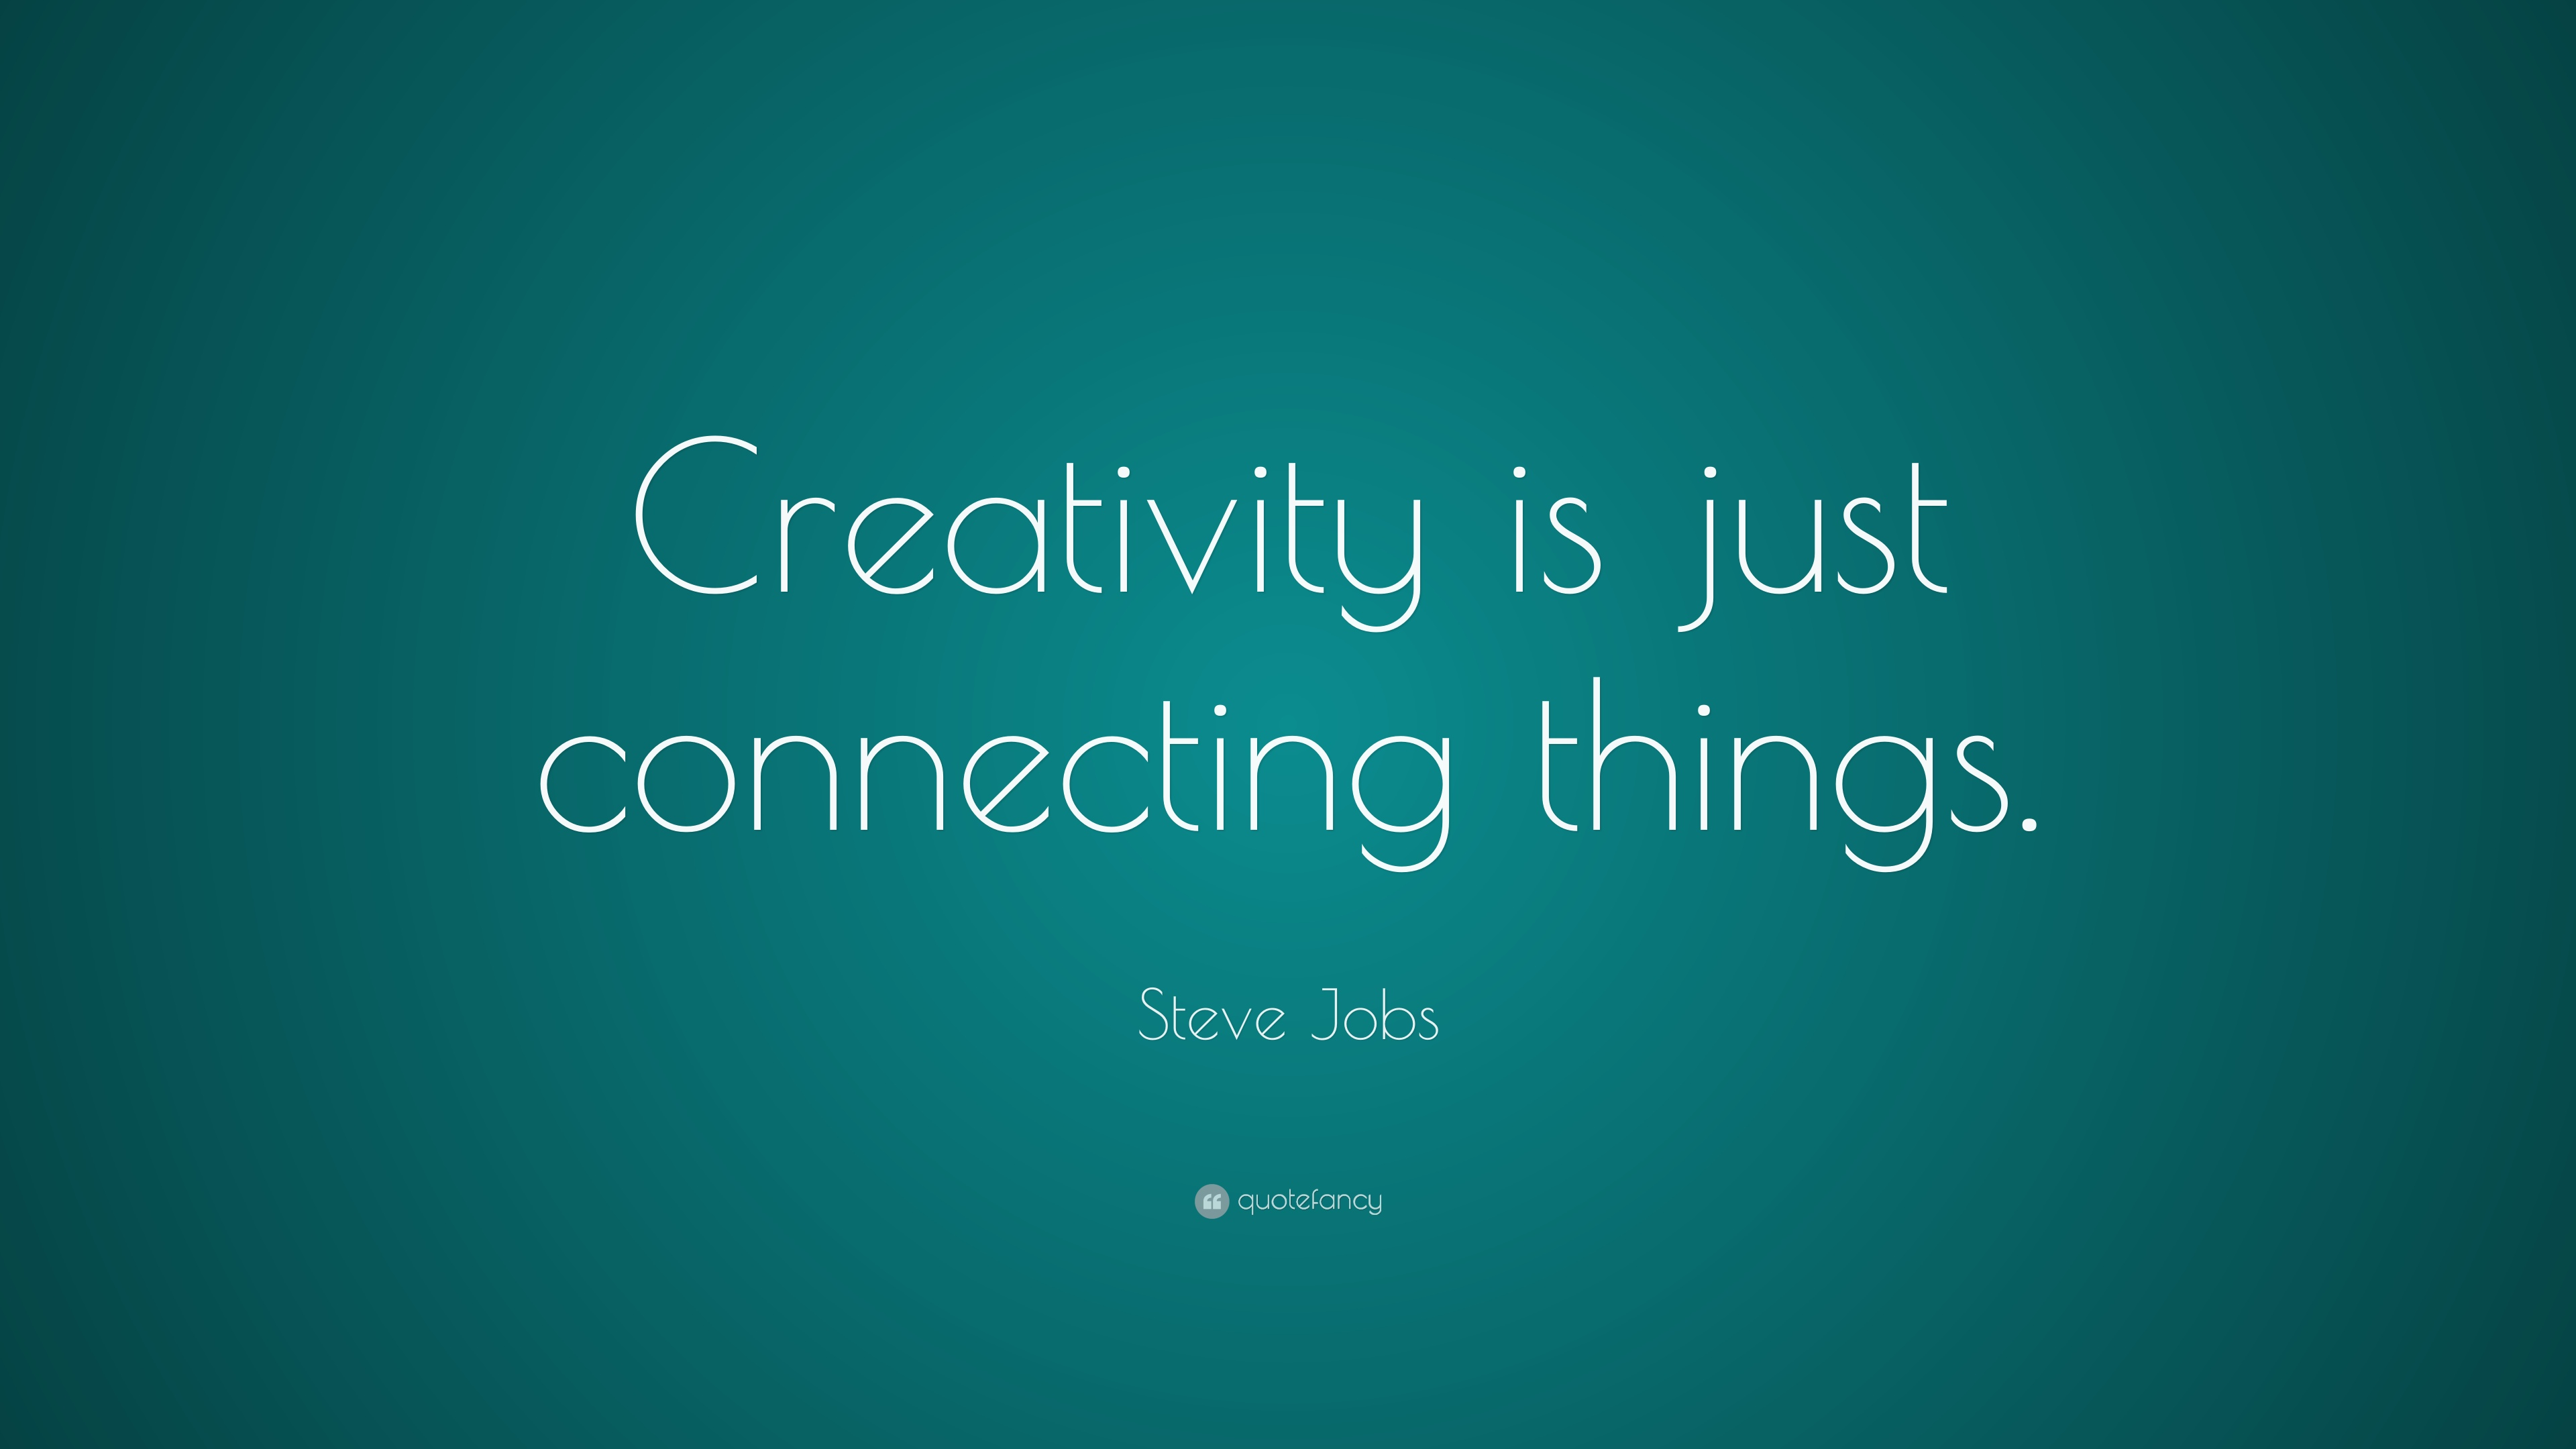 Creativity Quotes 16 Wallpapers Quotefancy